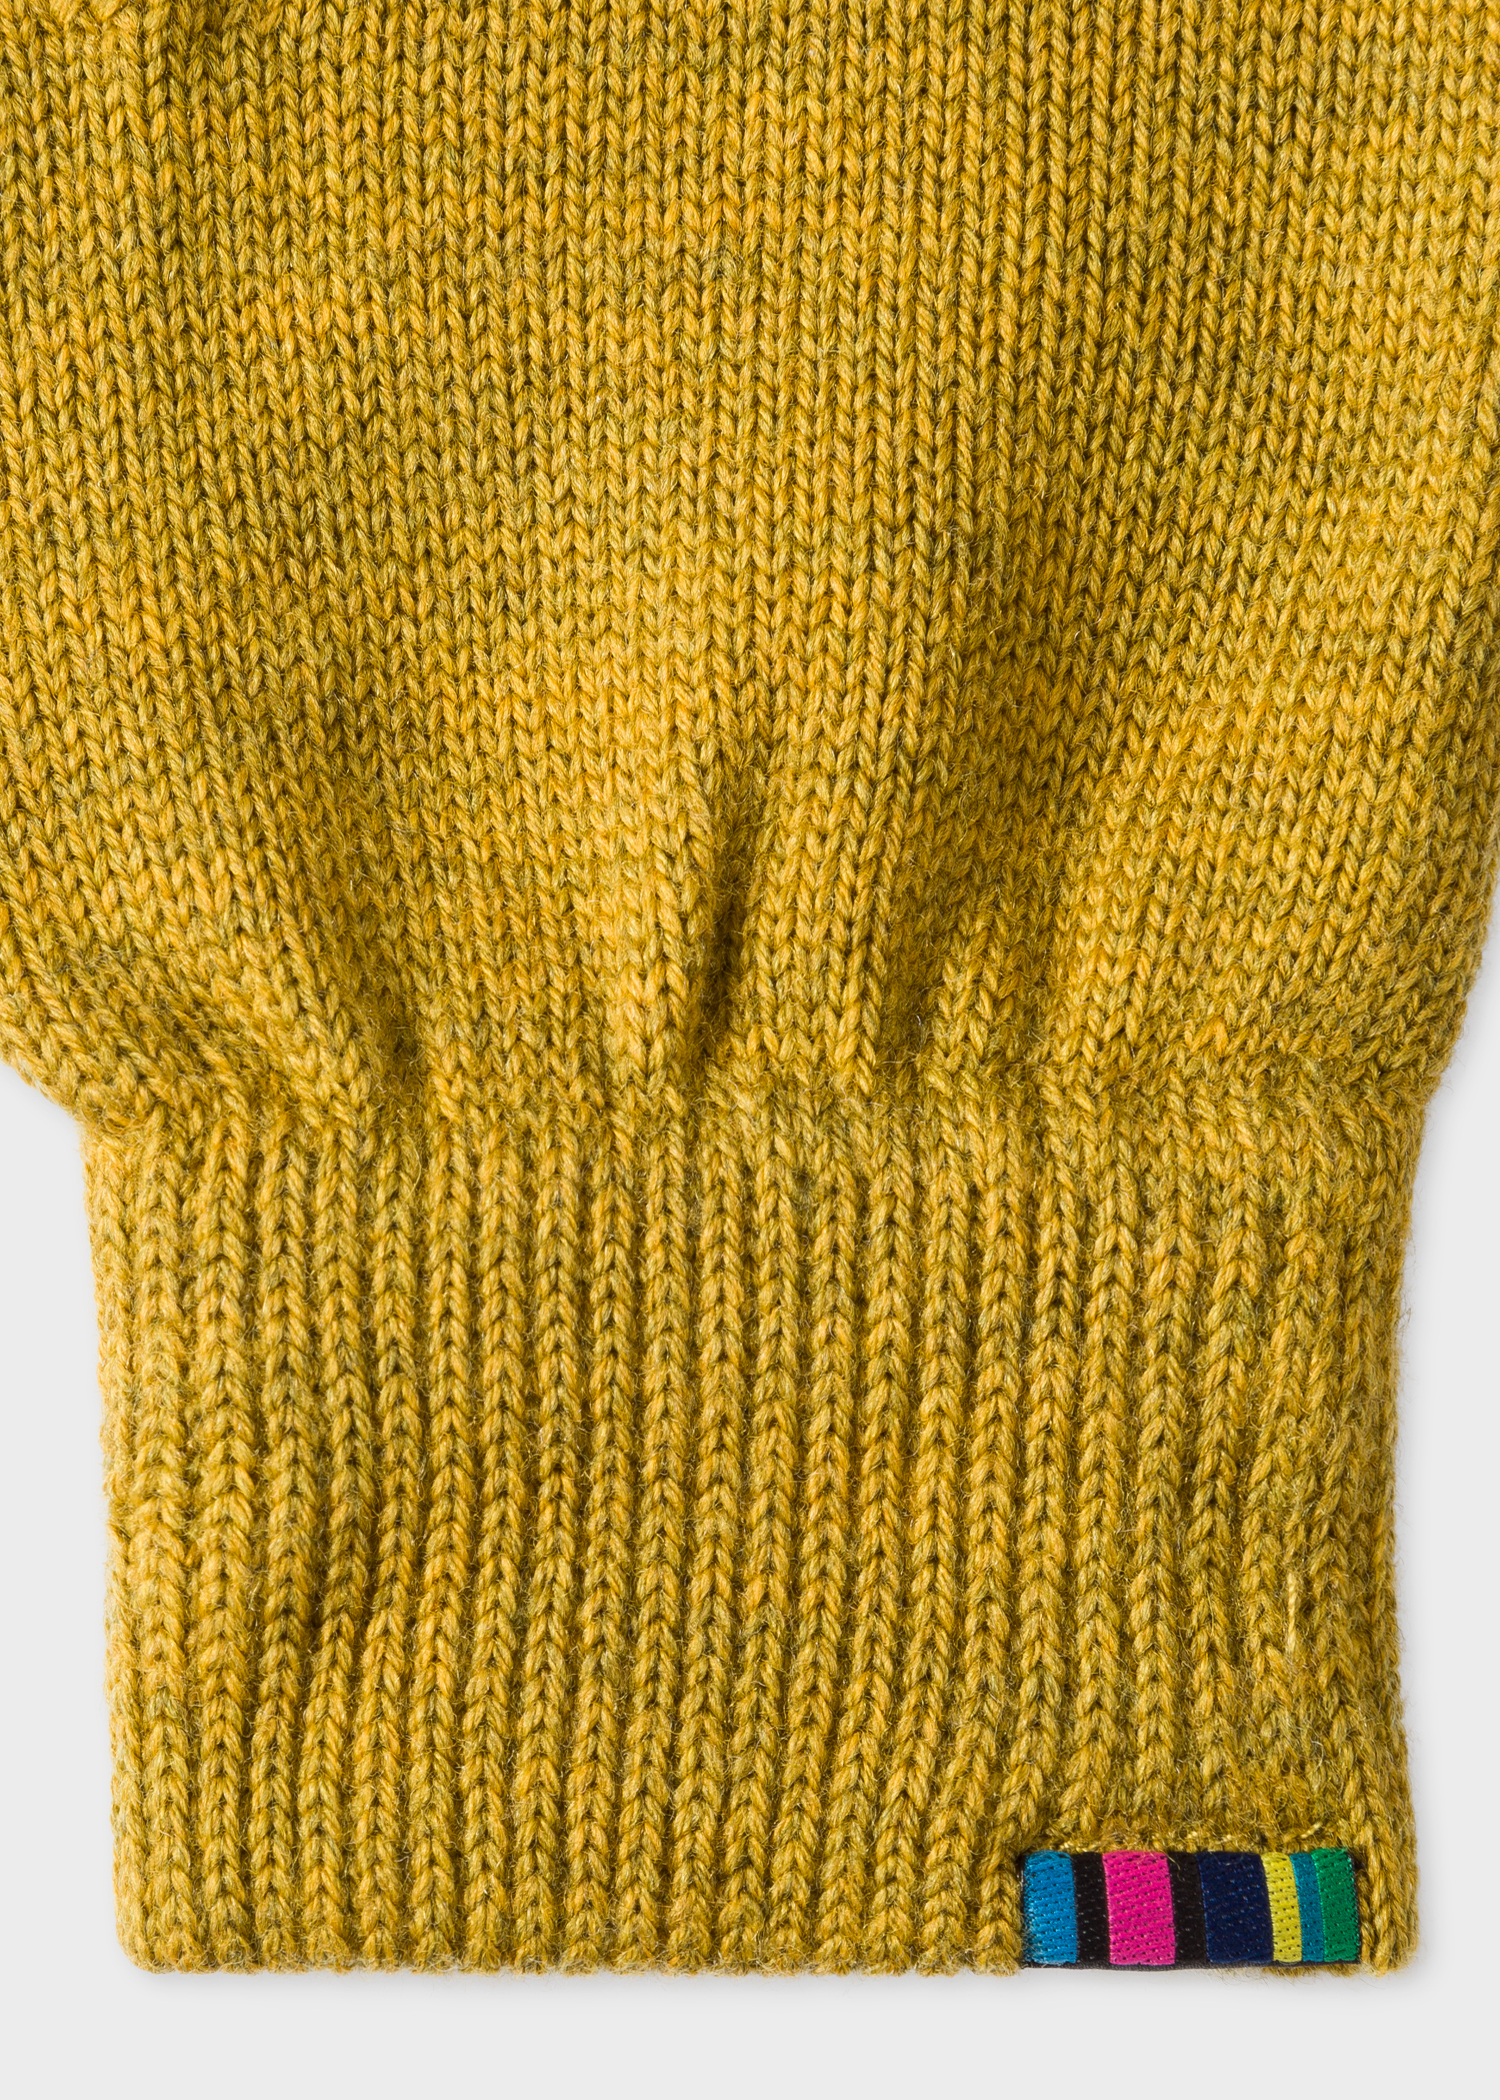 22f03cac918 Detailed View - Men s Mustard Yellow Lambswool Gloves Paul Smith